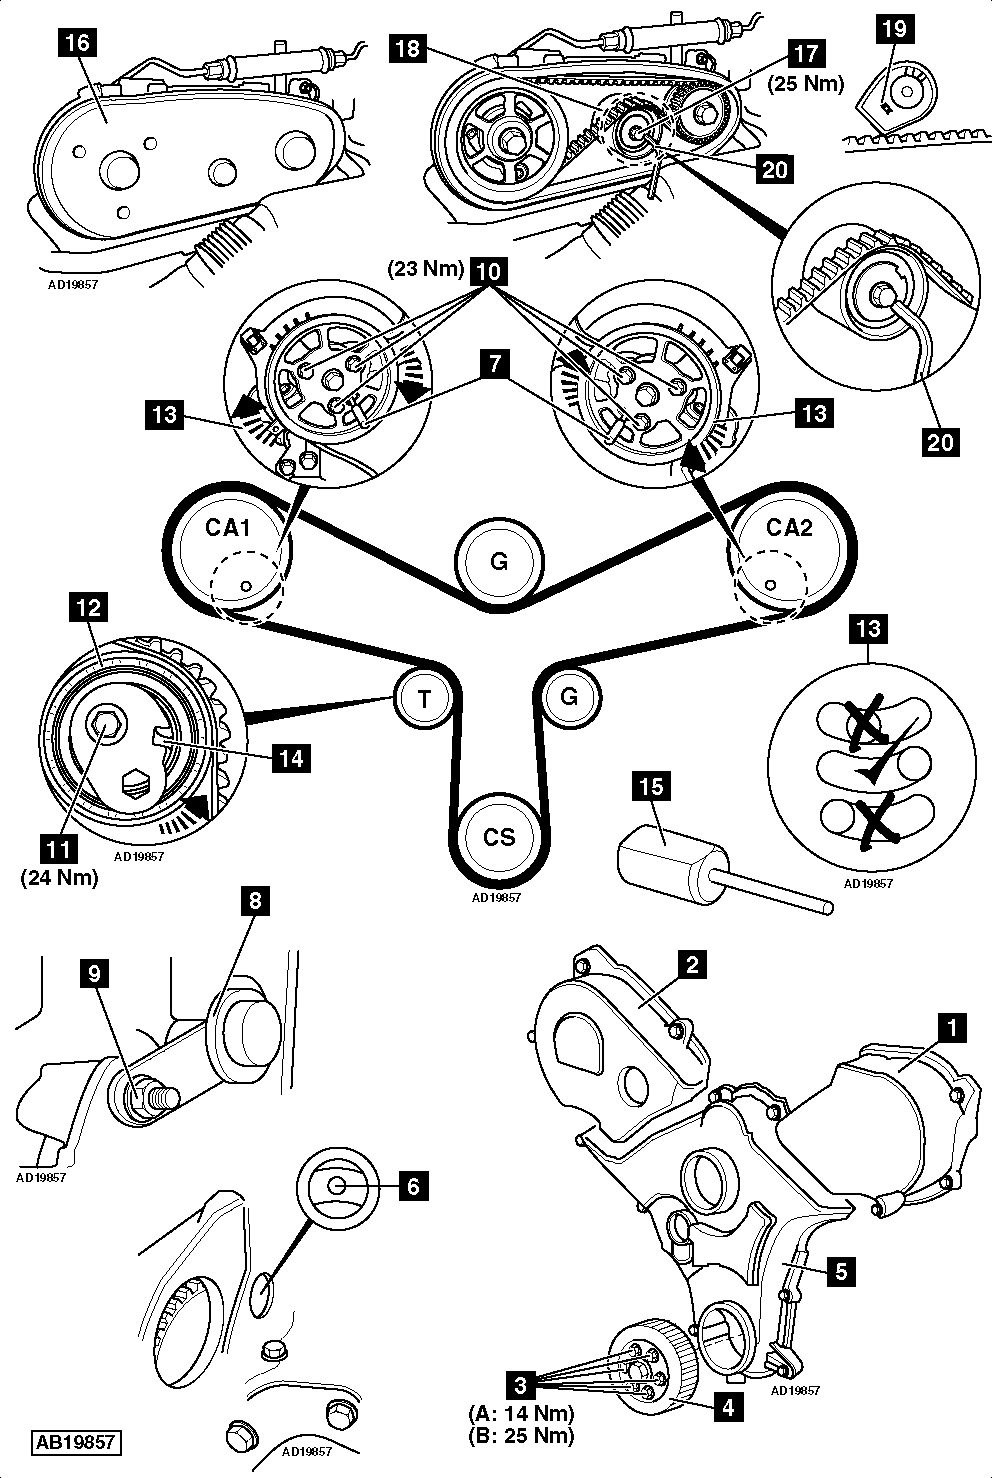 Ford 4 6 Engine Diagram as well 7 3 Fuel Filter Housing Removal additionally 156796 Help My Gutless 97 A moreover Ford Powerstroke Diesel Engine furthermore 99 Acura Rl Wiring Diagram. on 7 3 powerstroke fuel pressure problems